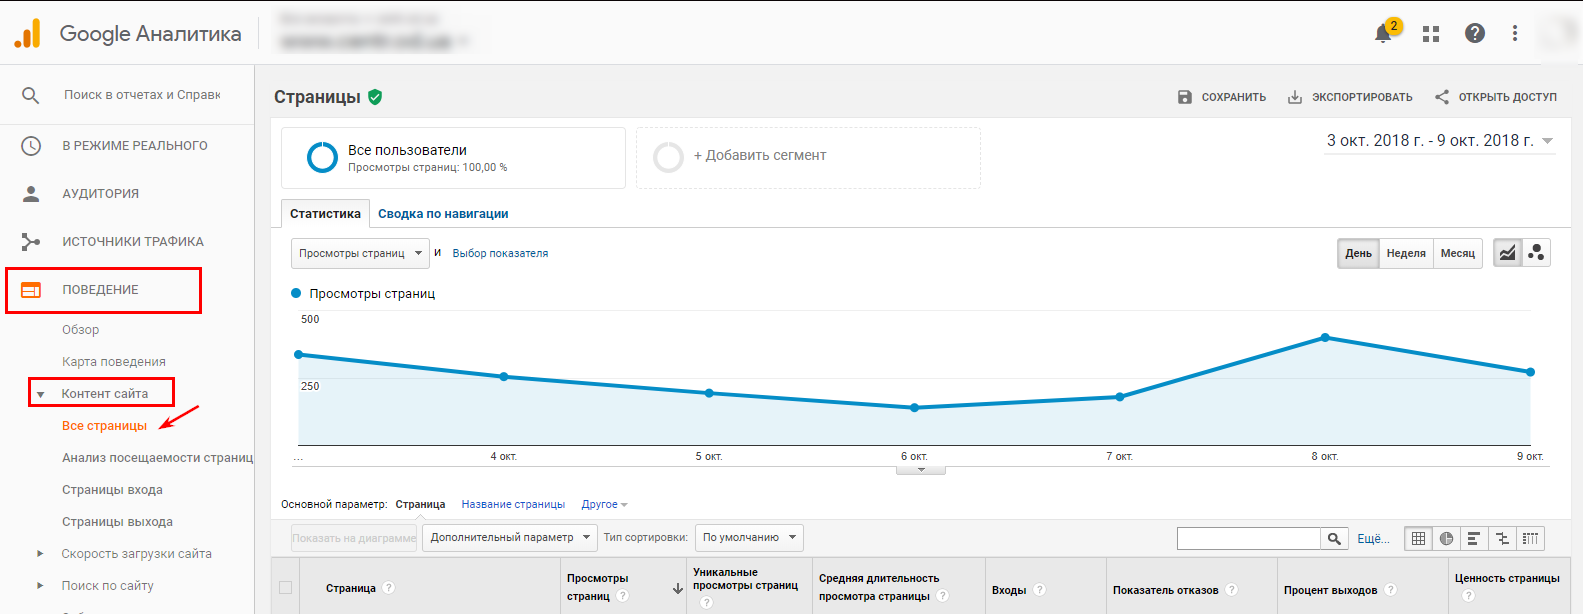 Все страницы сайта в Google Analytics